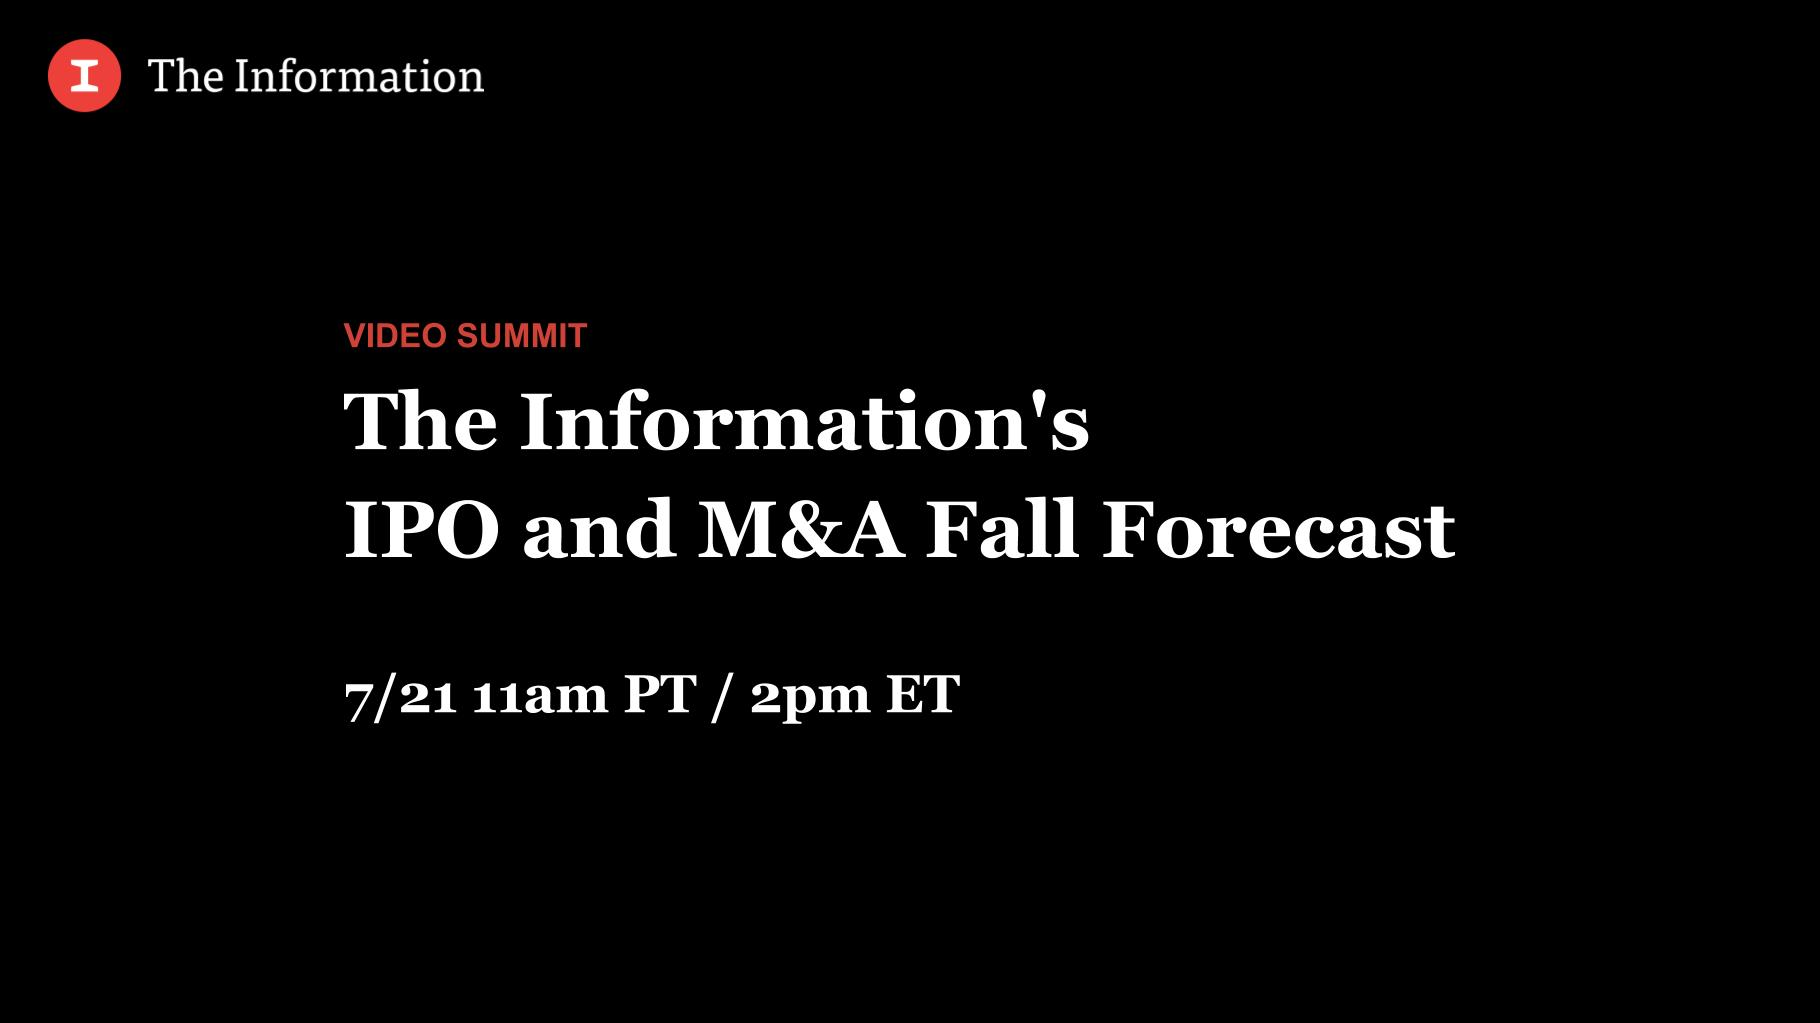 The Information's IPO and M&A Fall Forecast